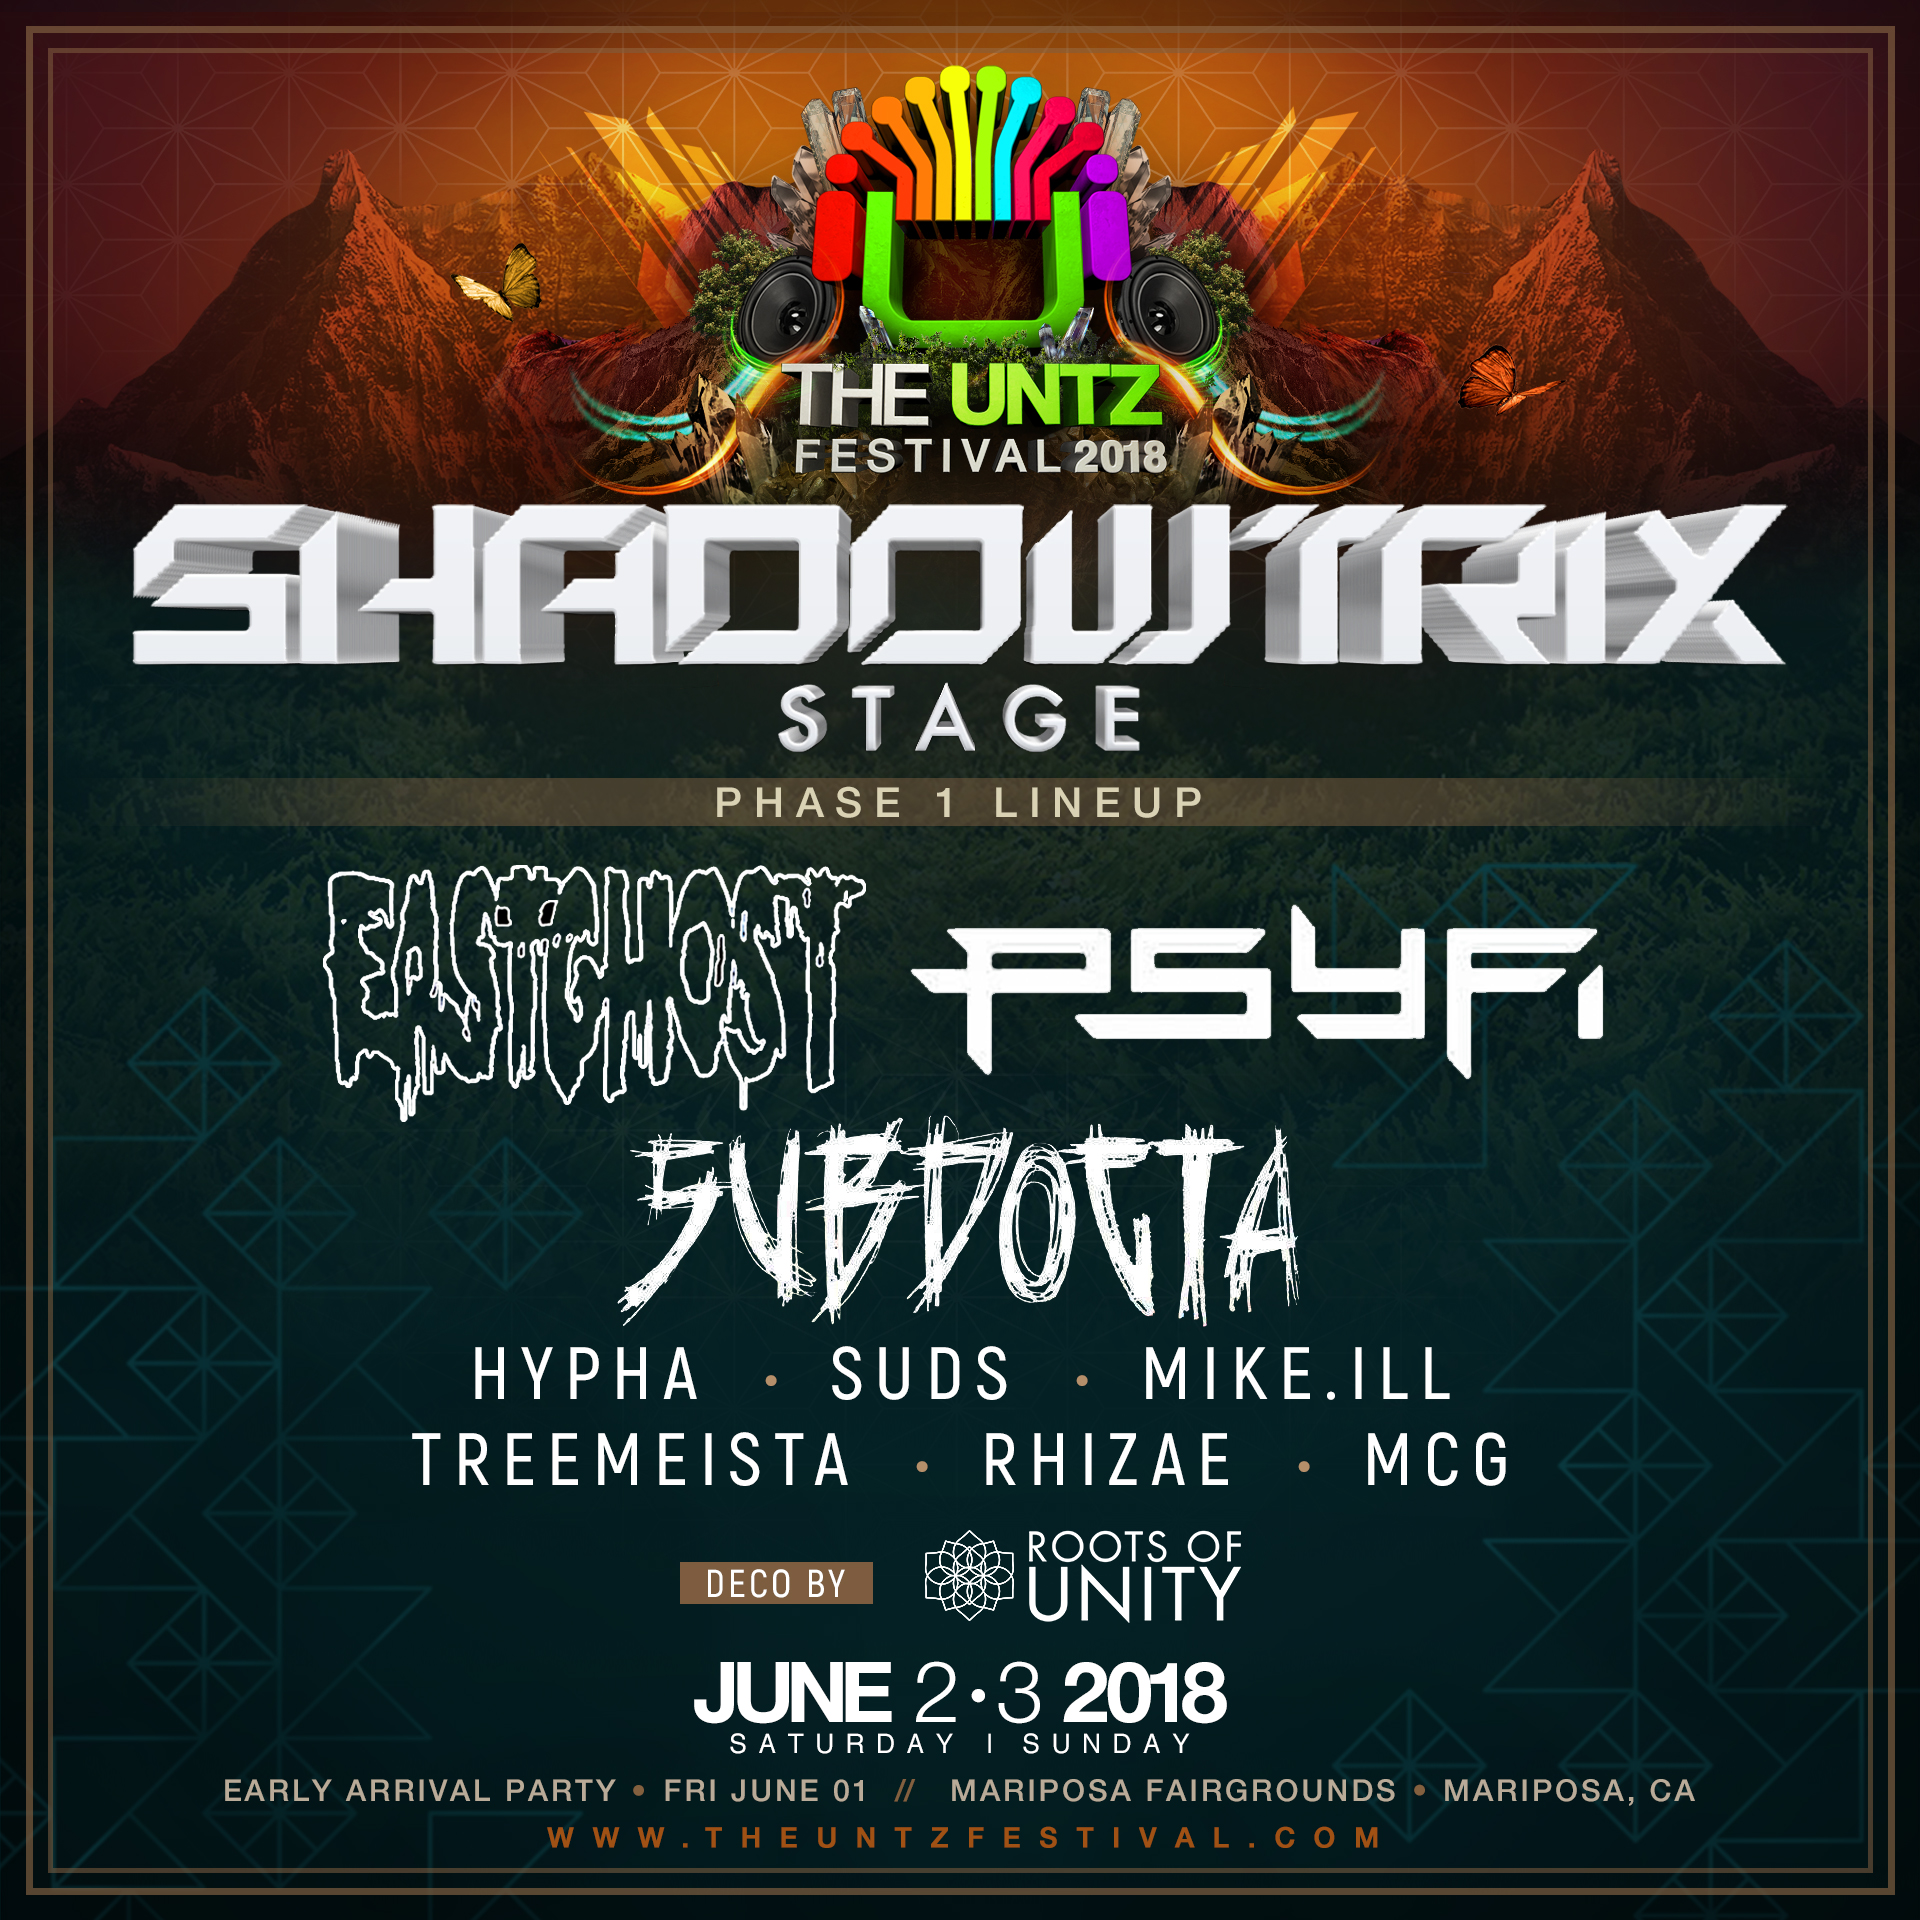 The Untz Festival - ShadowTrix Music